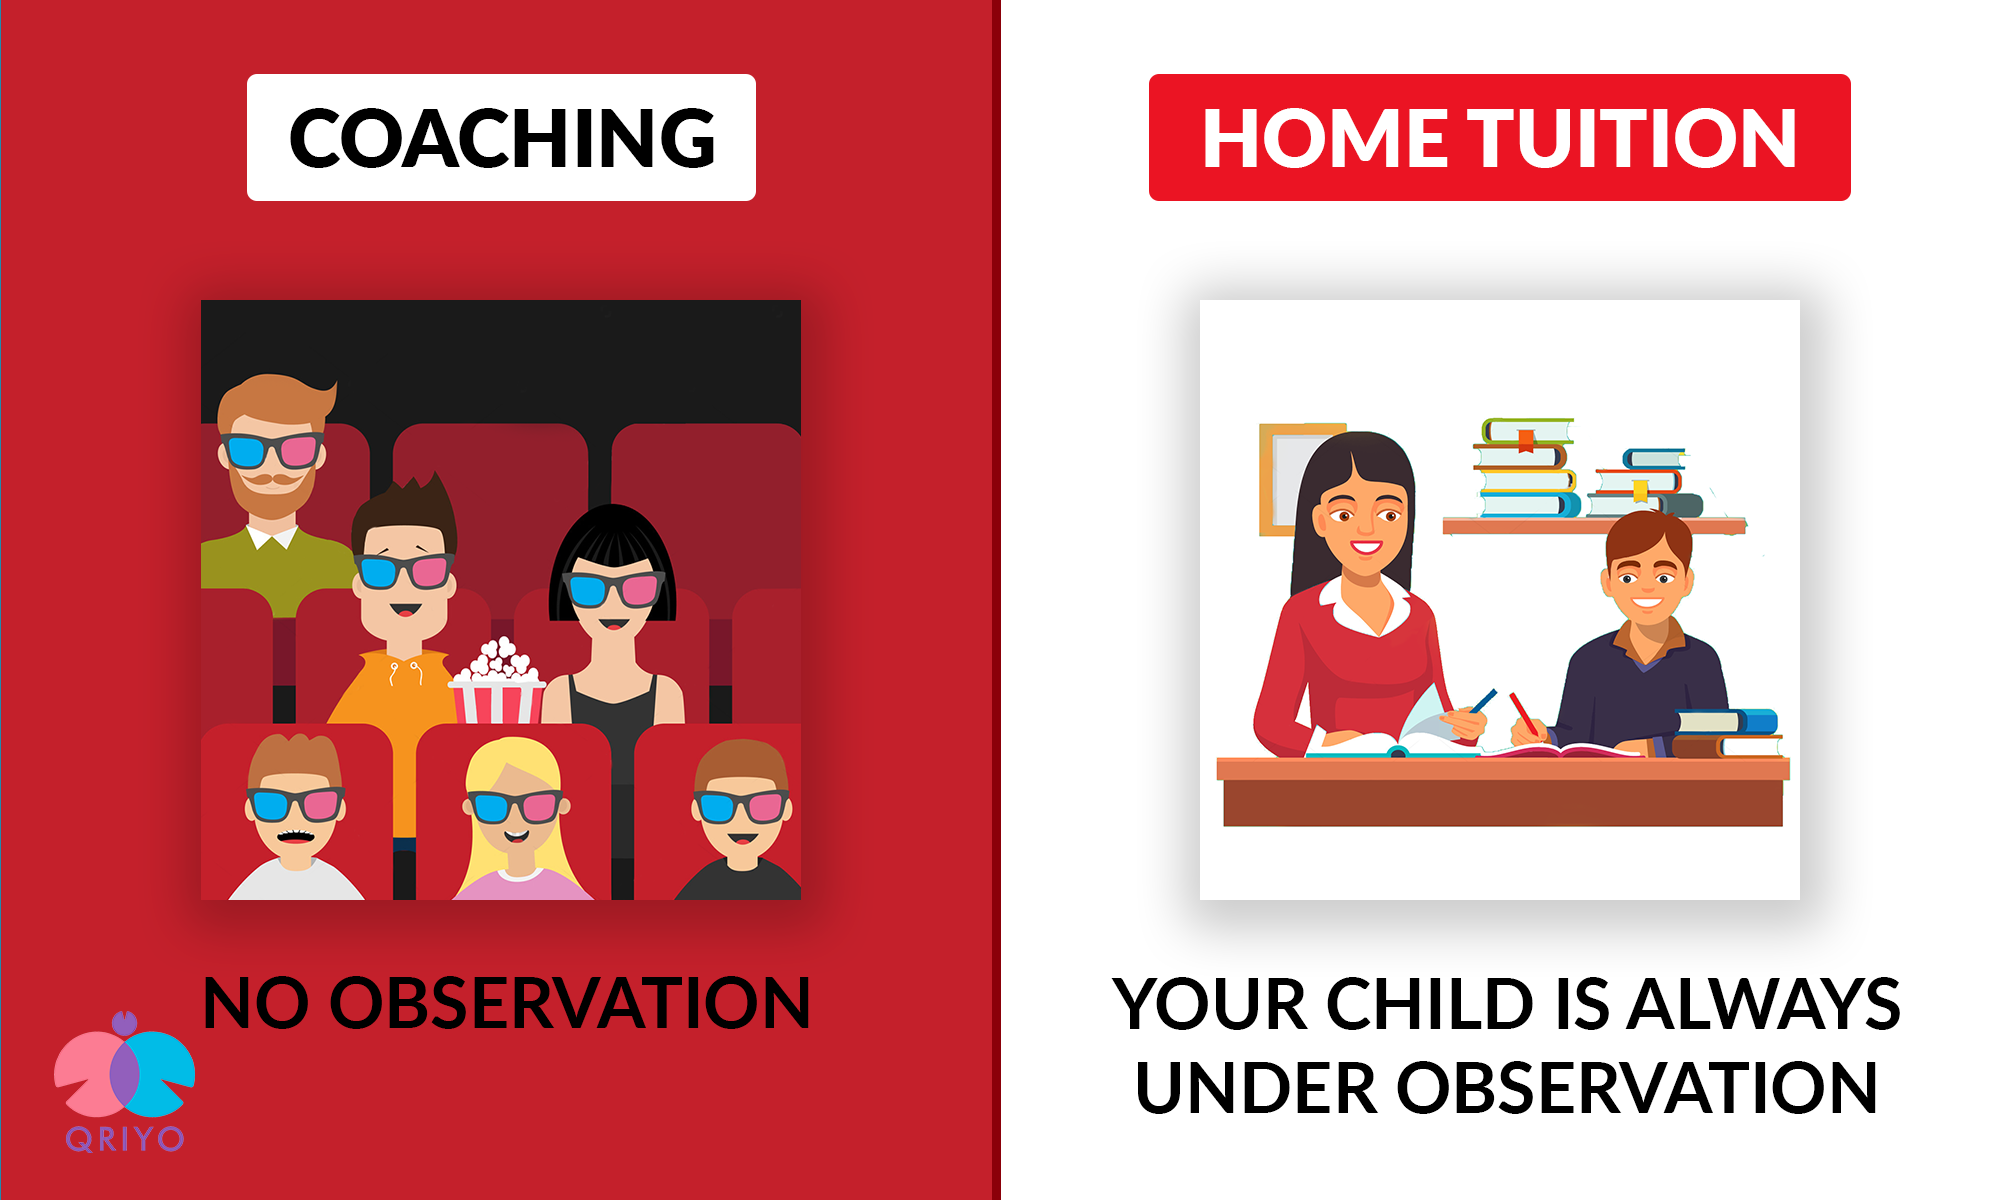 In home tuition your child is always under observation. Not feasible in Coachings.